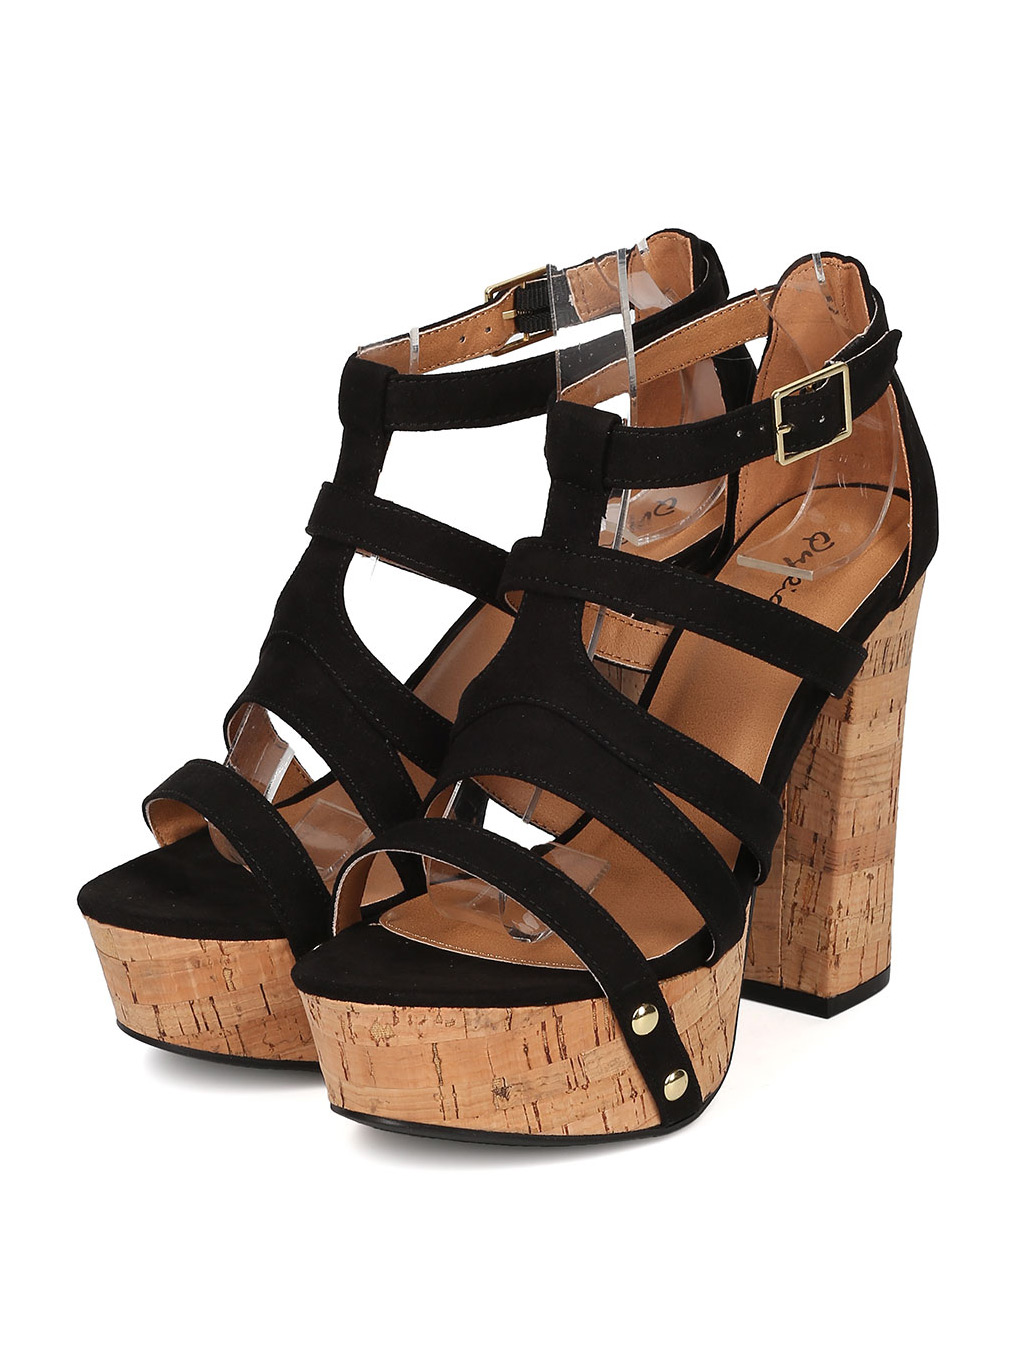 New Women Qupid Crush-03 Faux Suede Strappy Cork Platform Block Heel Sandal